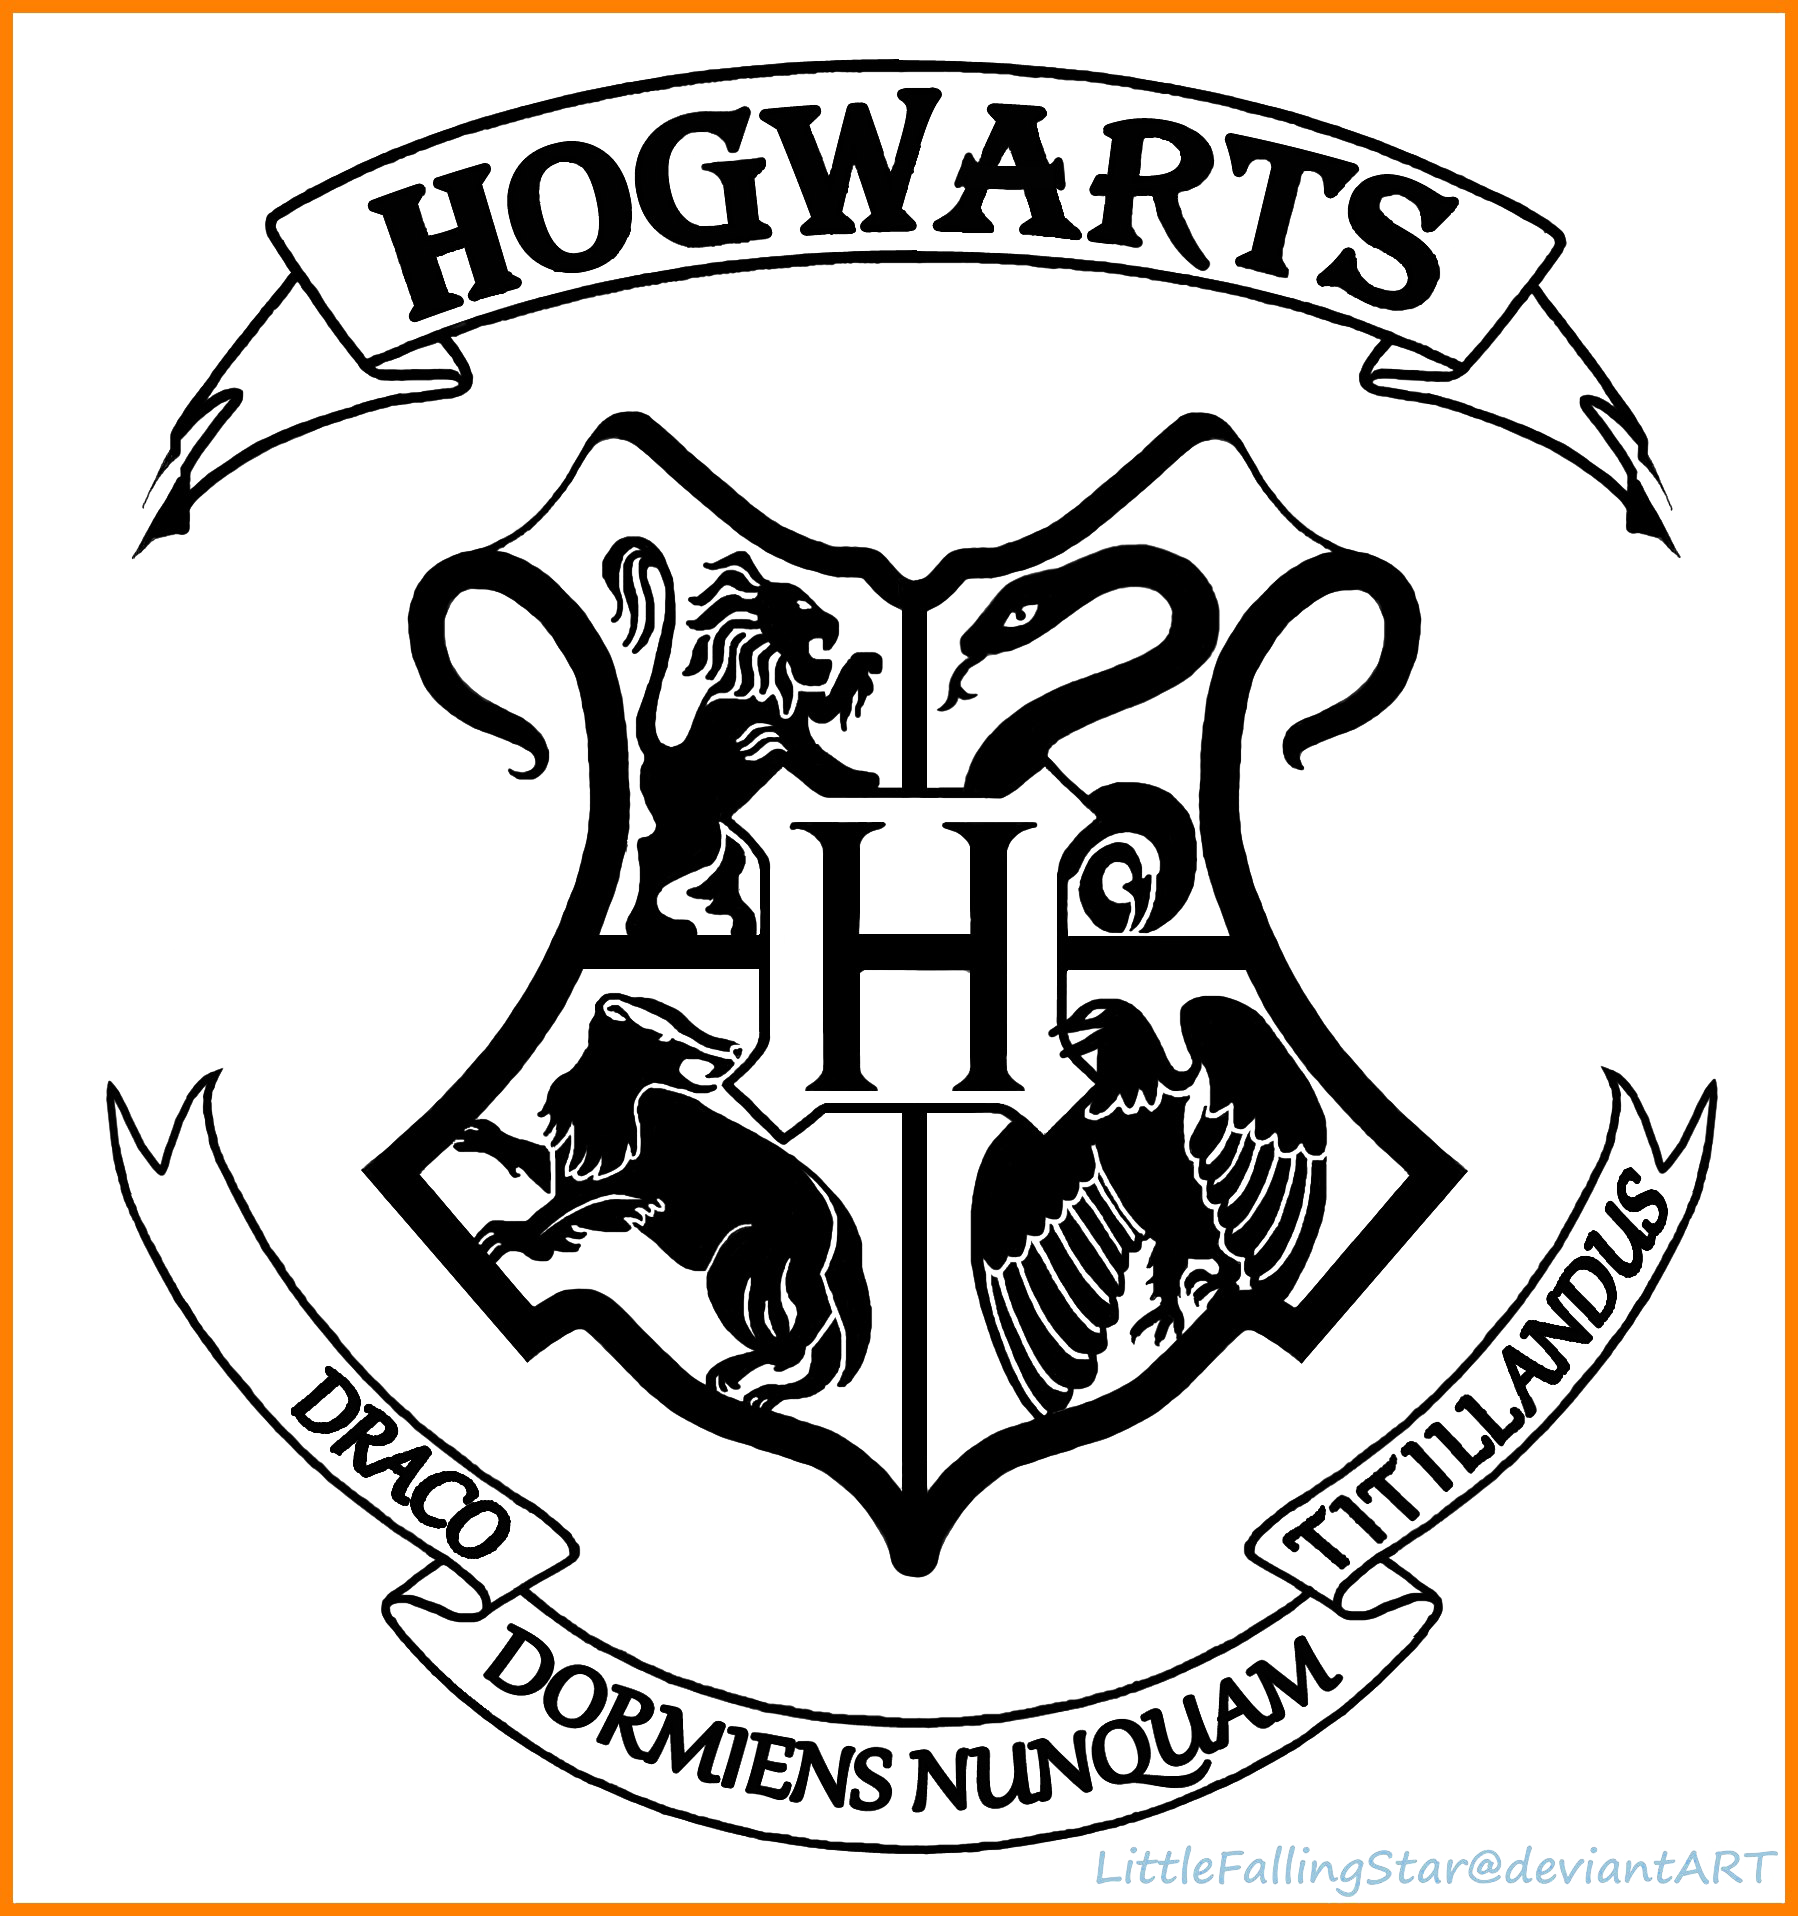 Crest png clear background. Hogwarts logo transparent mart